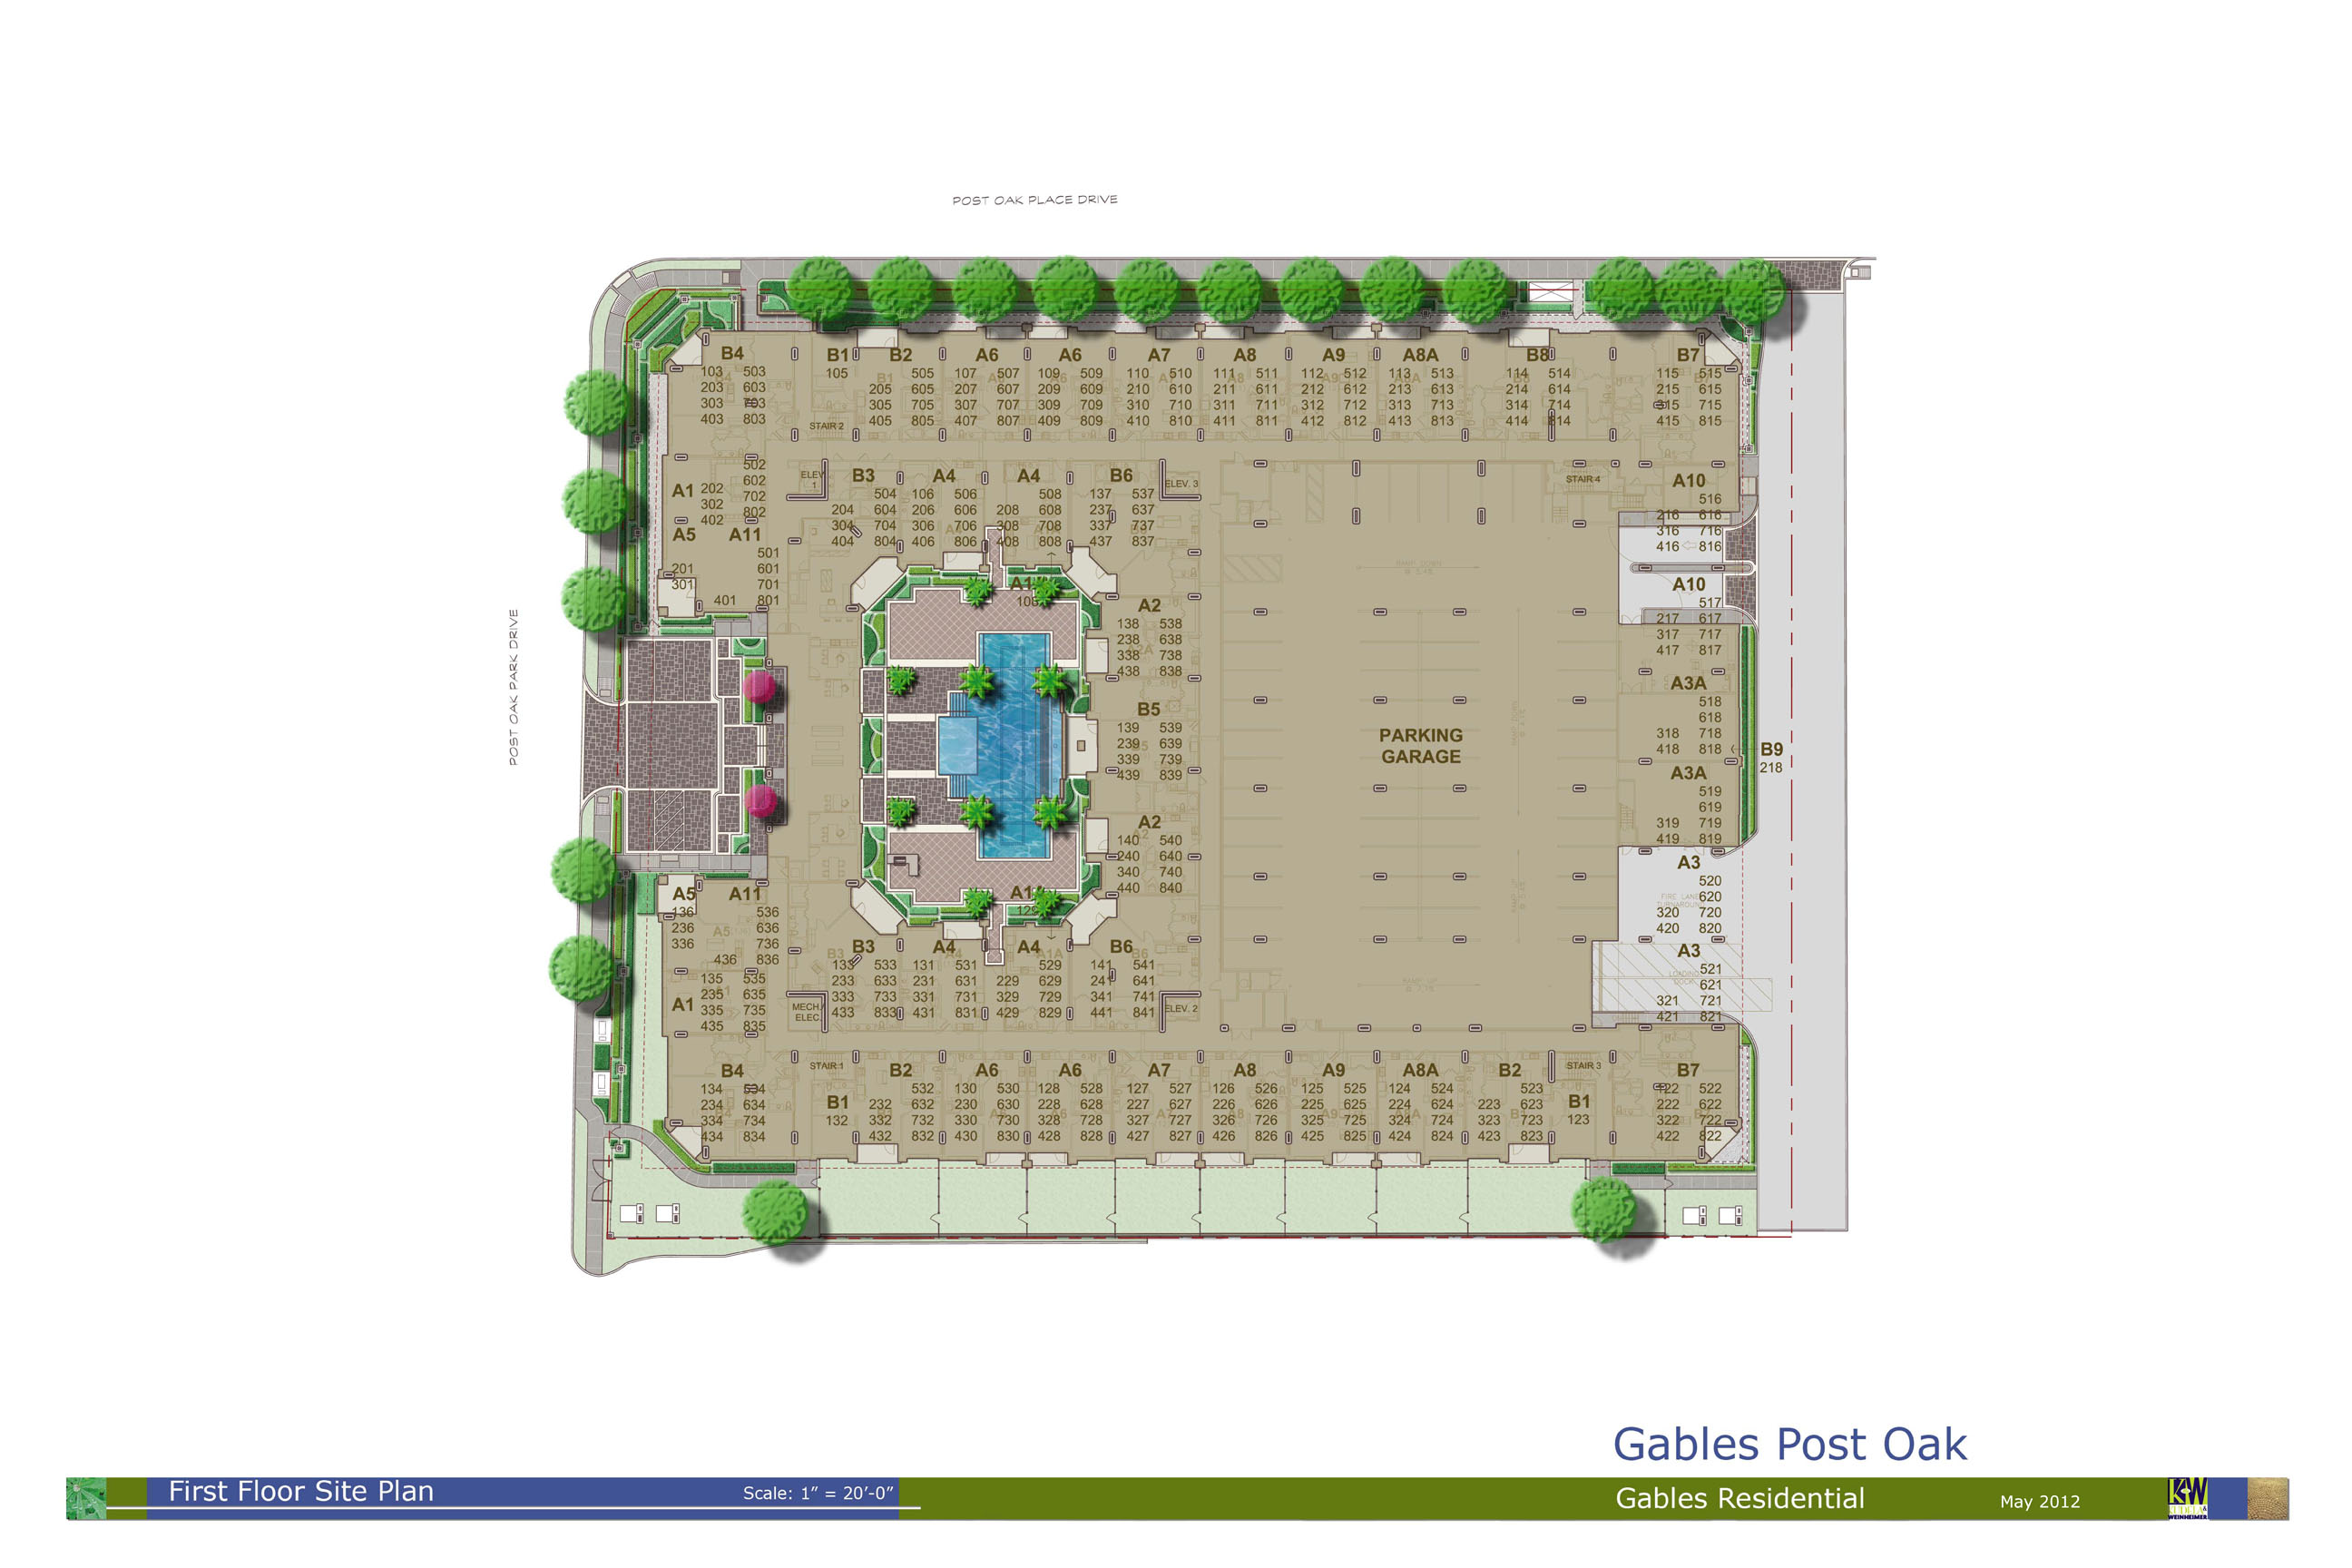 Gables Post Oak | Gables Residential Communities